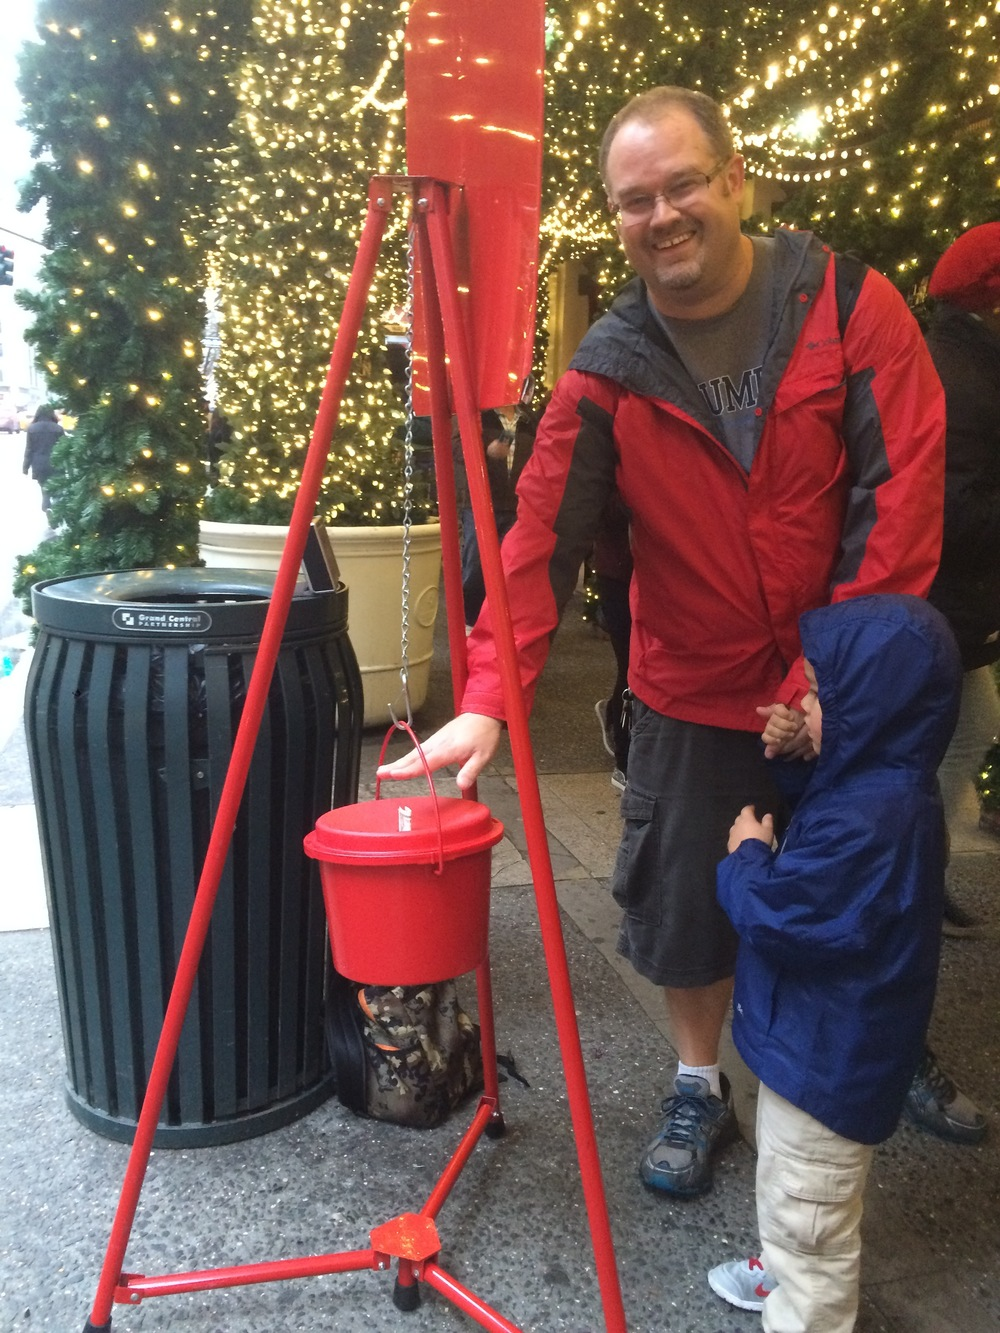 Giving money to the Salvation Army bell ringer near the 5th Ave holiday window displays.